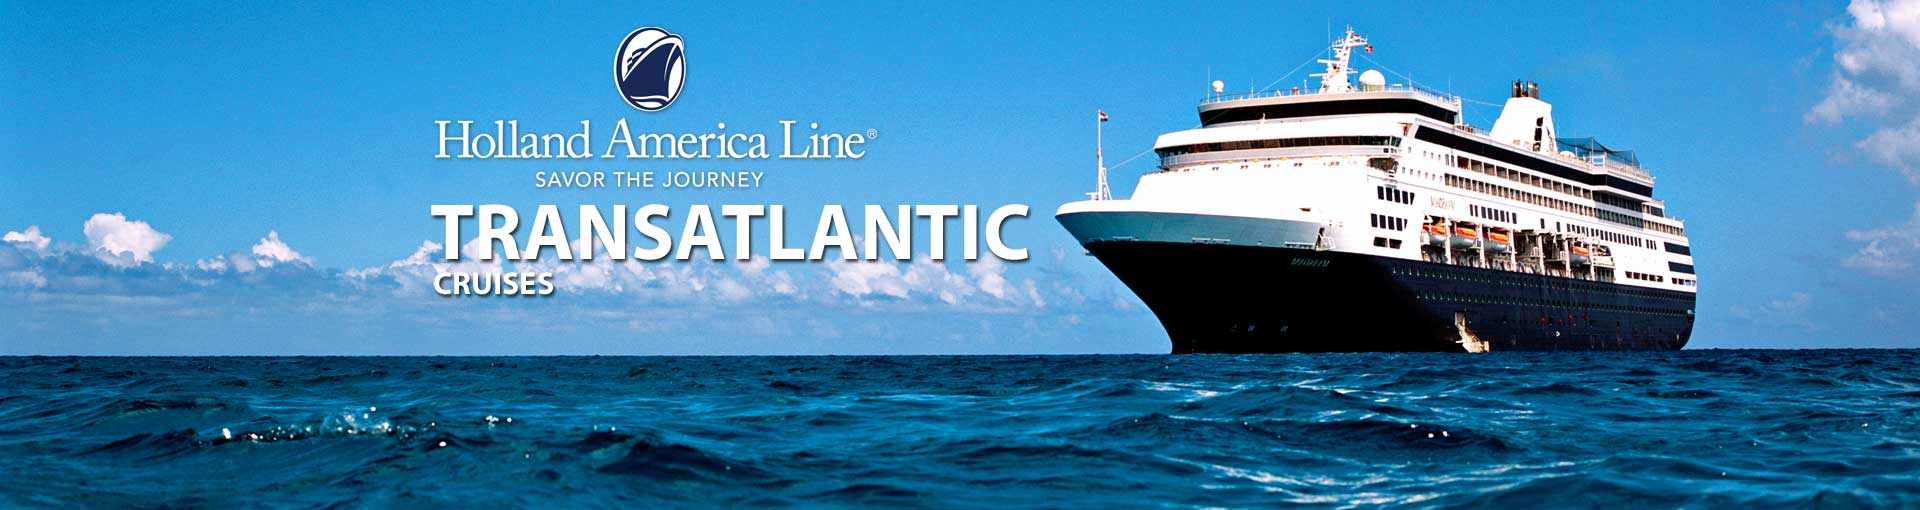 Holland America Transatlantic Cruises